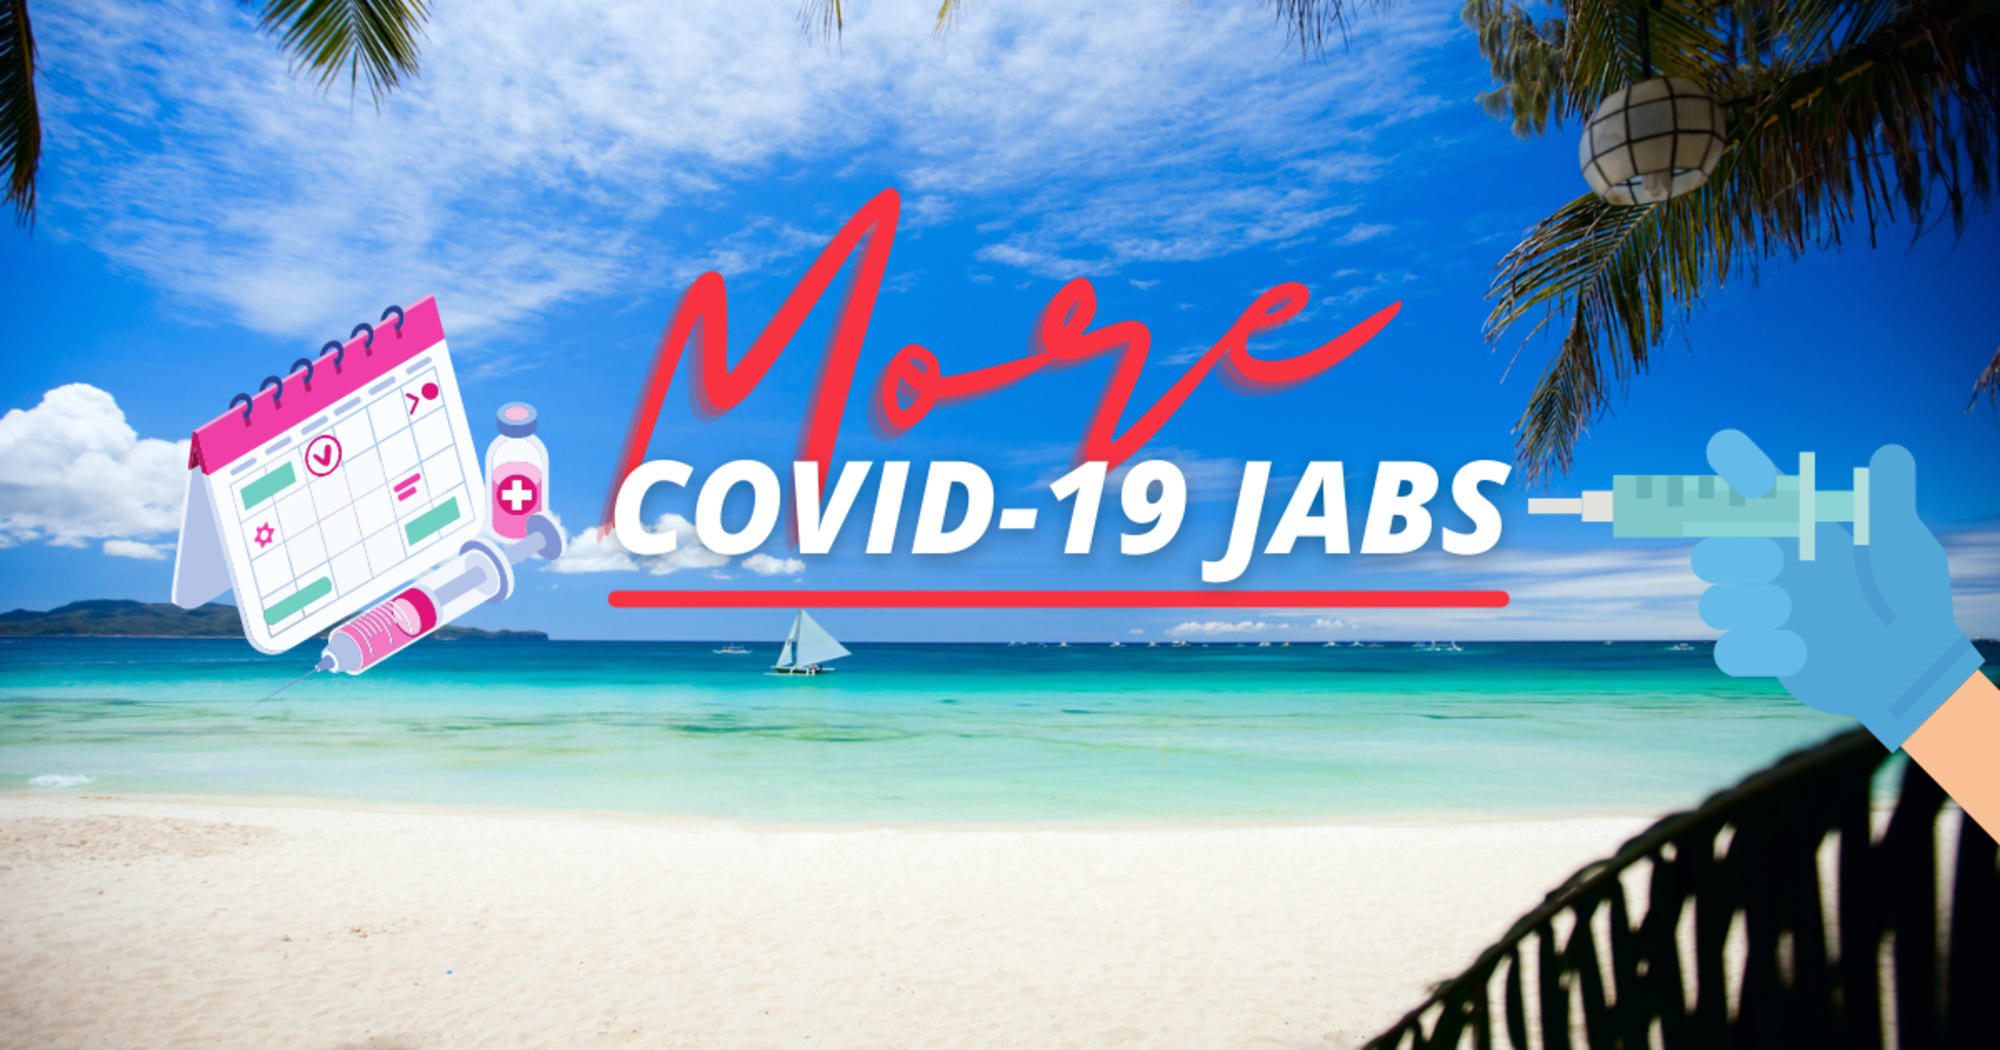 More tourism workers in Boracay are to receive vaccine jabs with the arrival of an additional 10,000 Sinovac -DOT